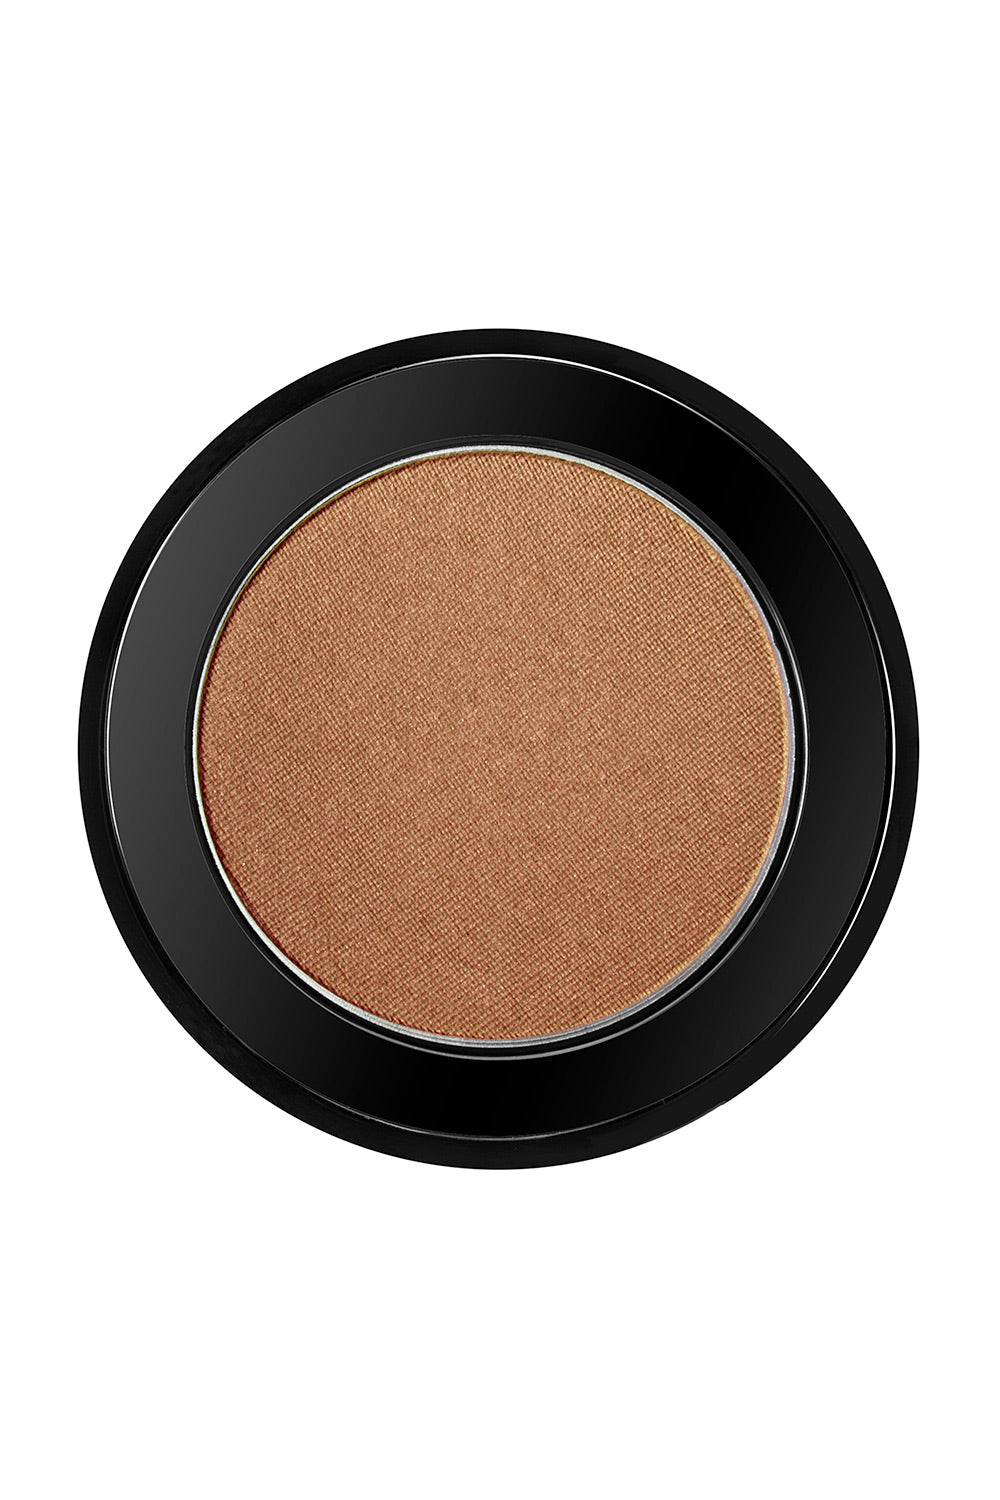 Type 3 Eyeshadow - Gingerbread